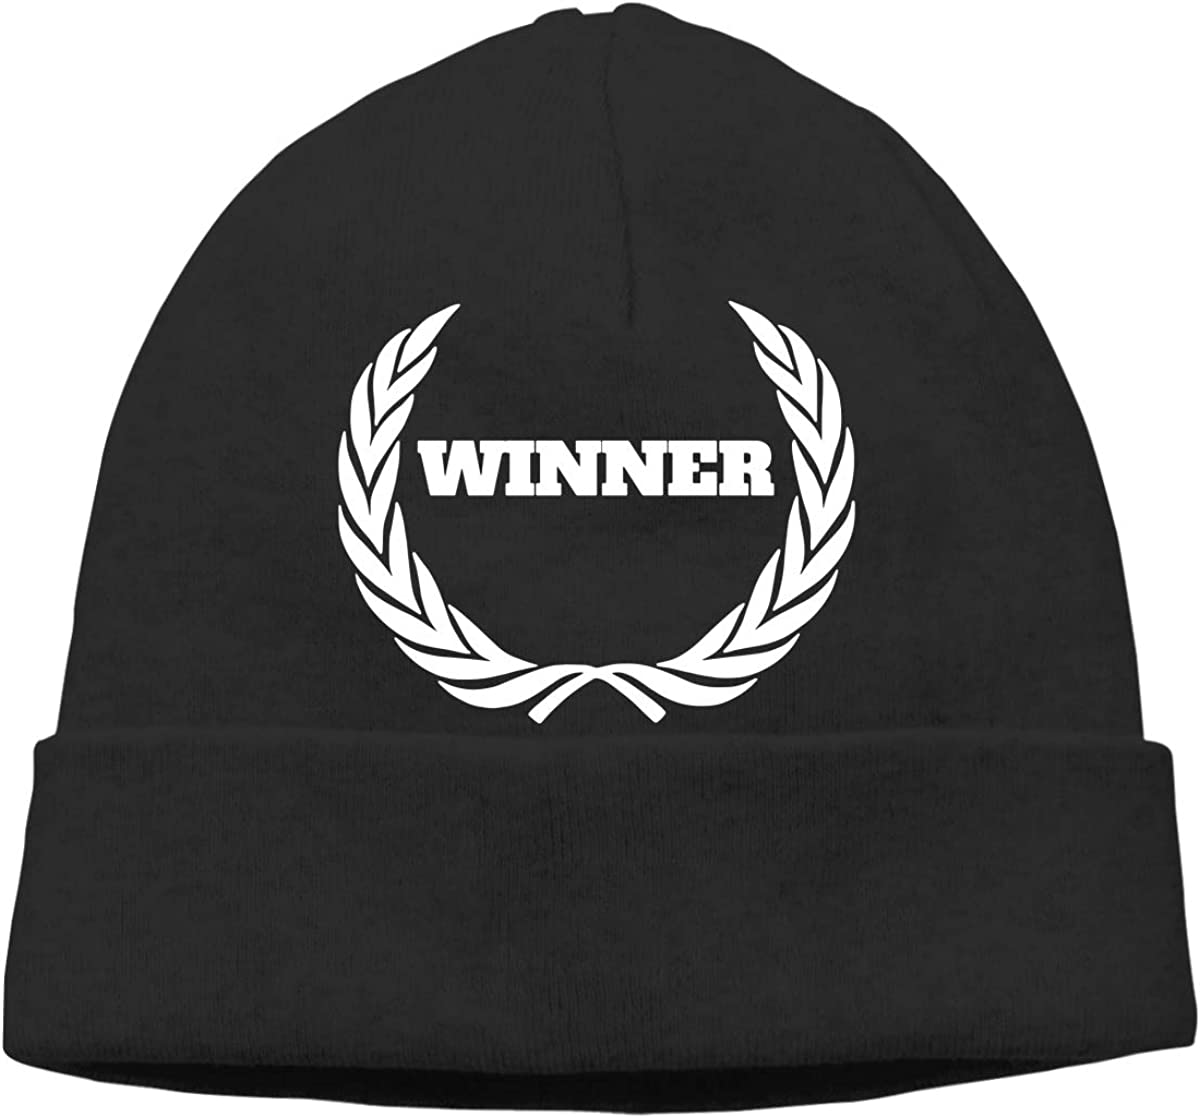 Winner Men//Women Helmet Liner Surf Skull Cap